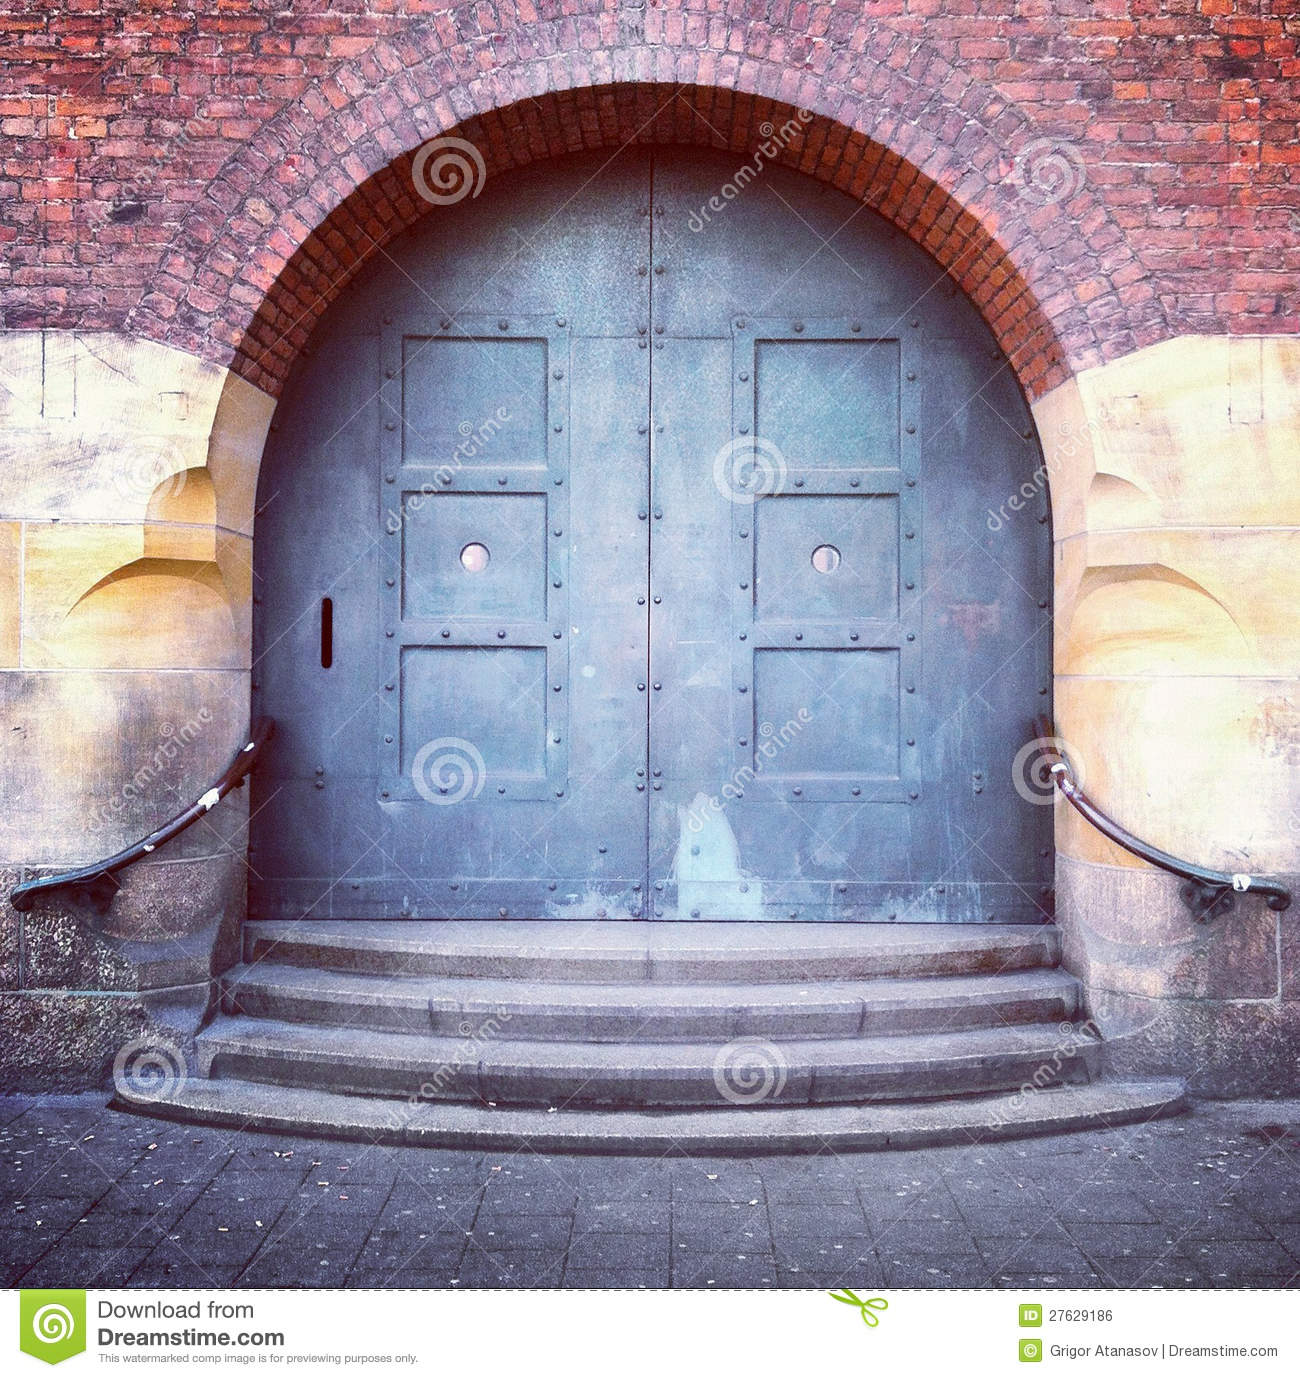 Old arched door and steps